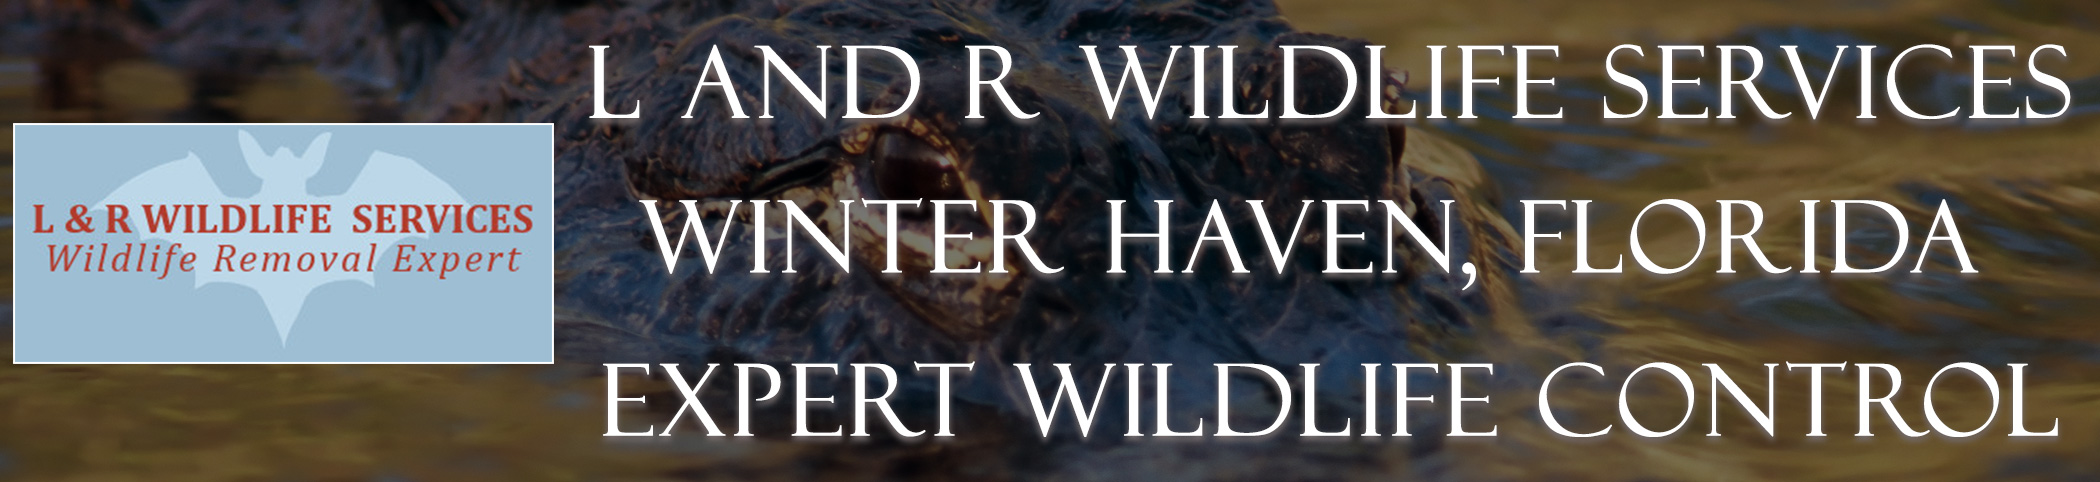 L_and_R_Wildlife_Services_Winter_Haven_FL_headers